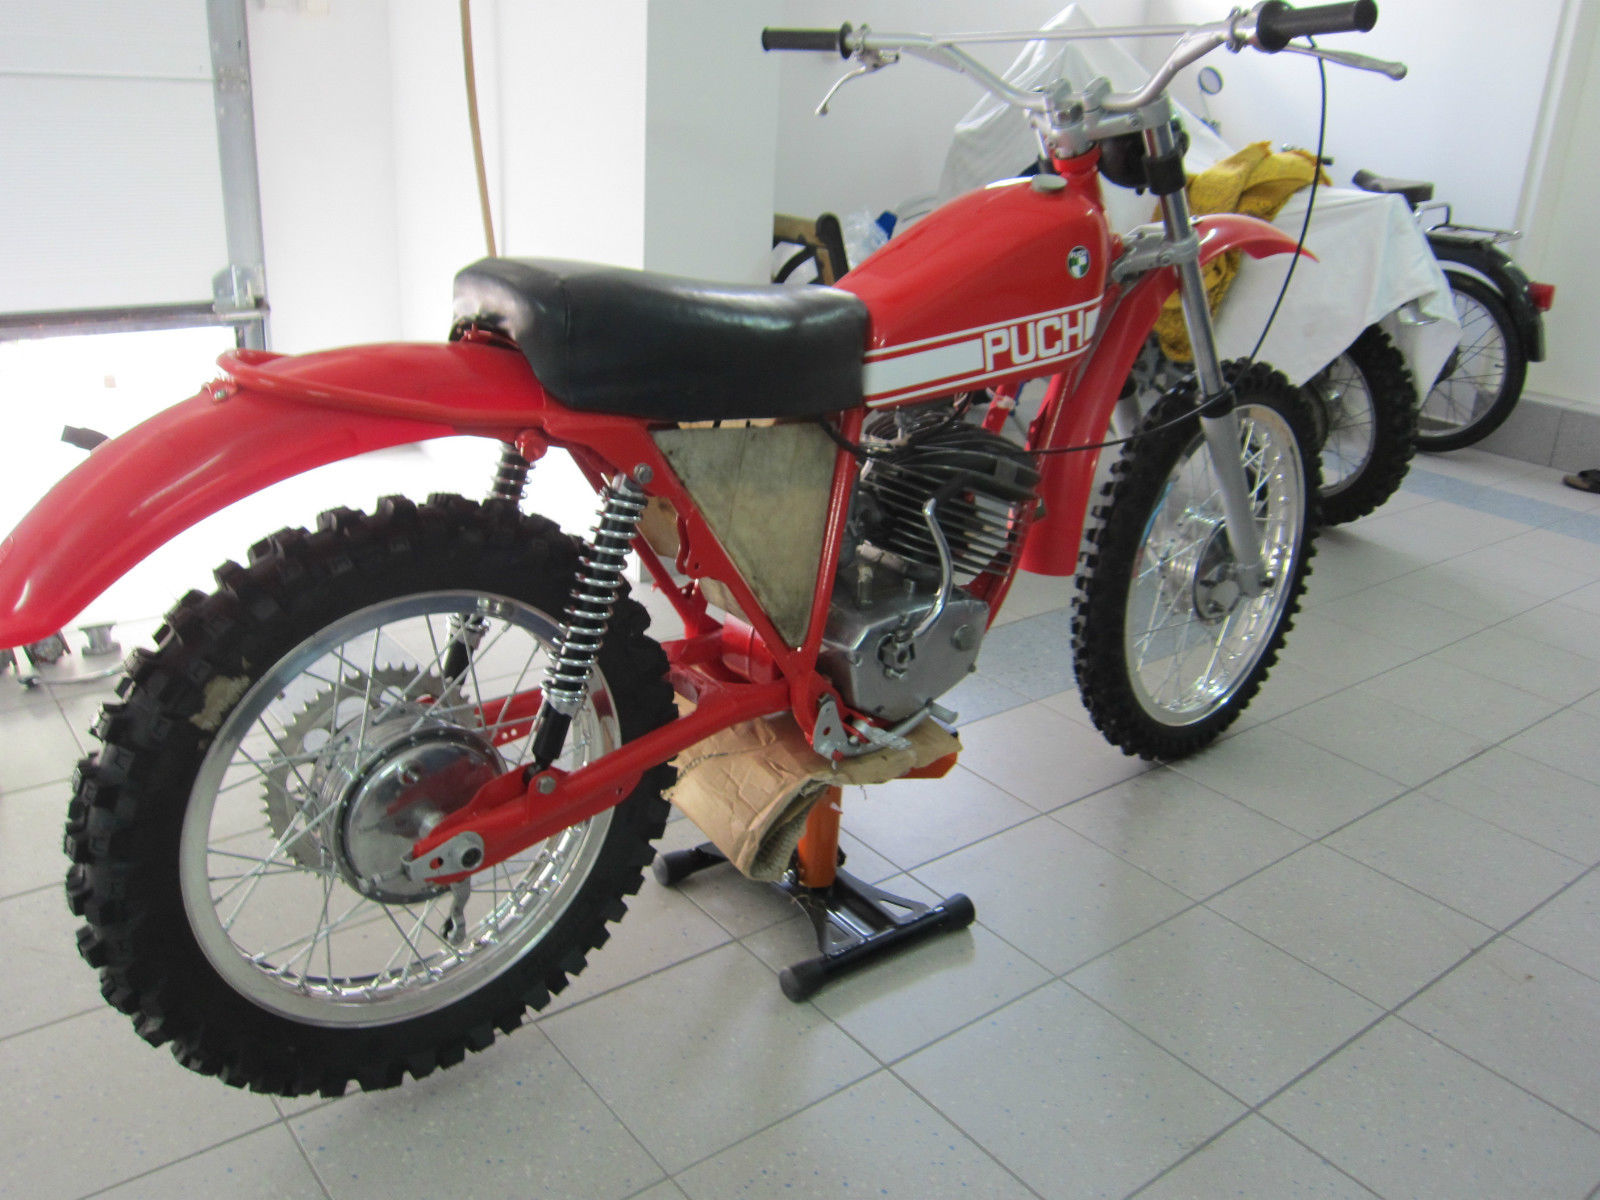 Puch 175 Enduro 1972 images #121272